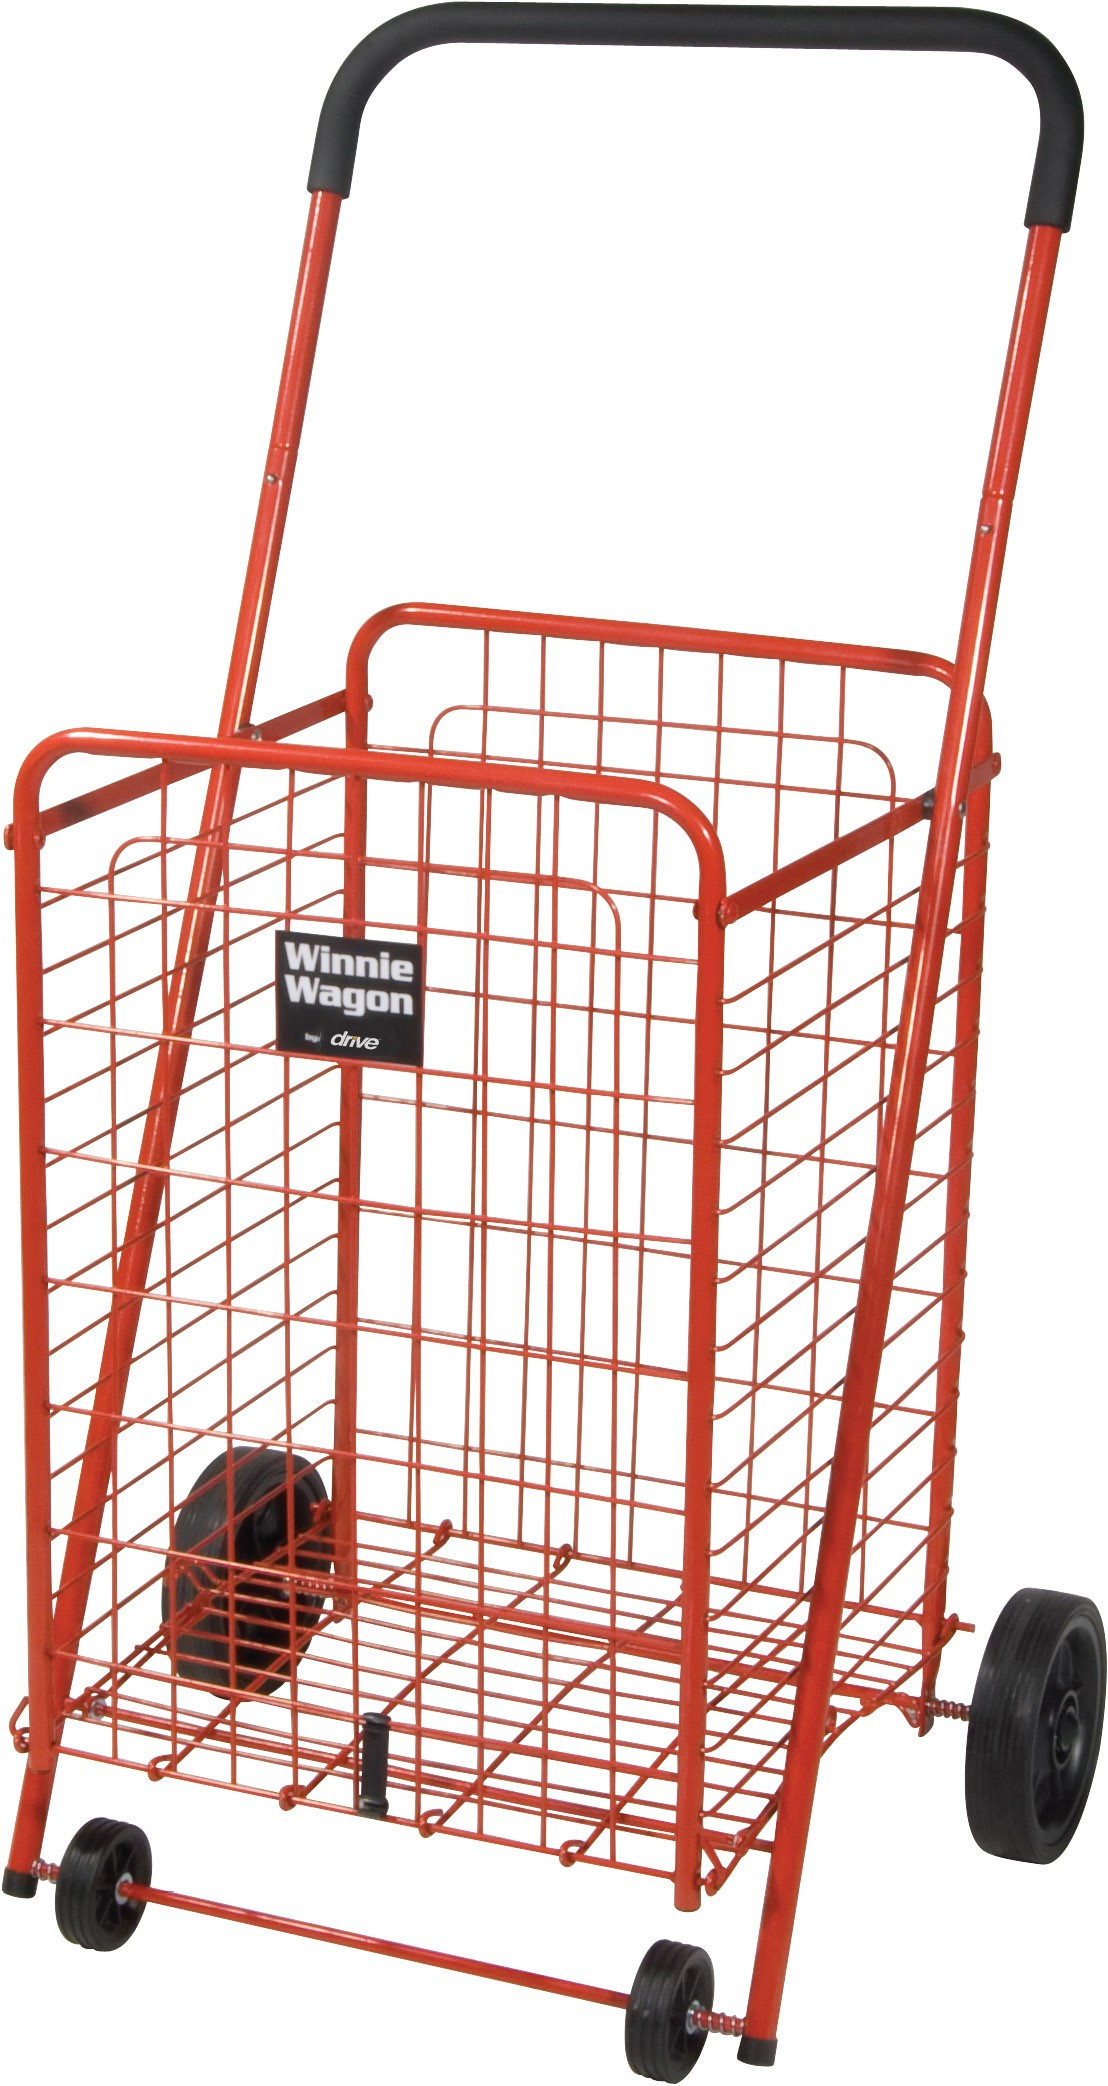 Winnie Wagon with Adjustable Height Handle - Red